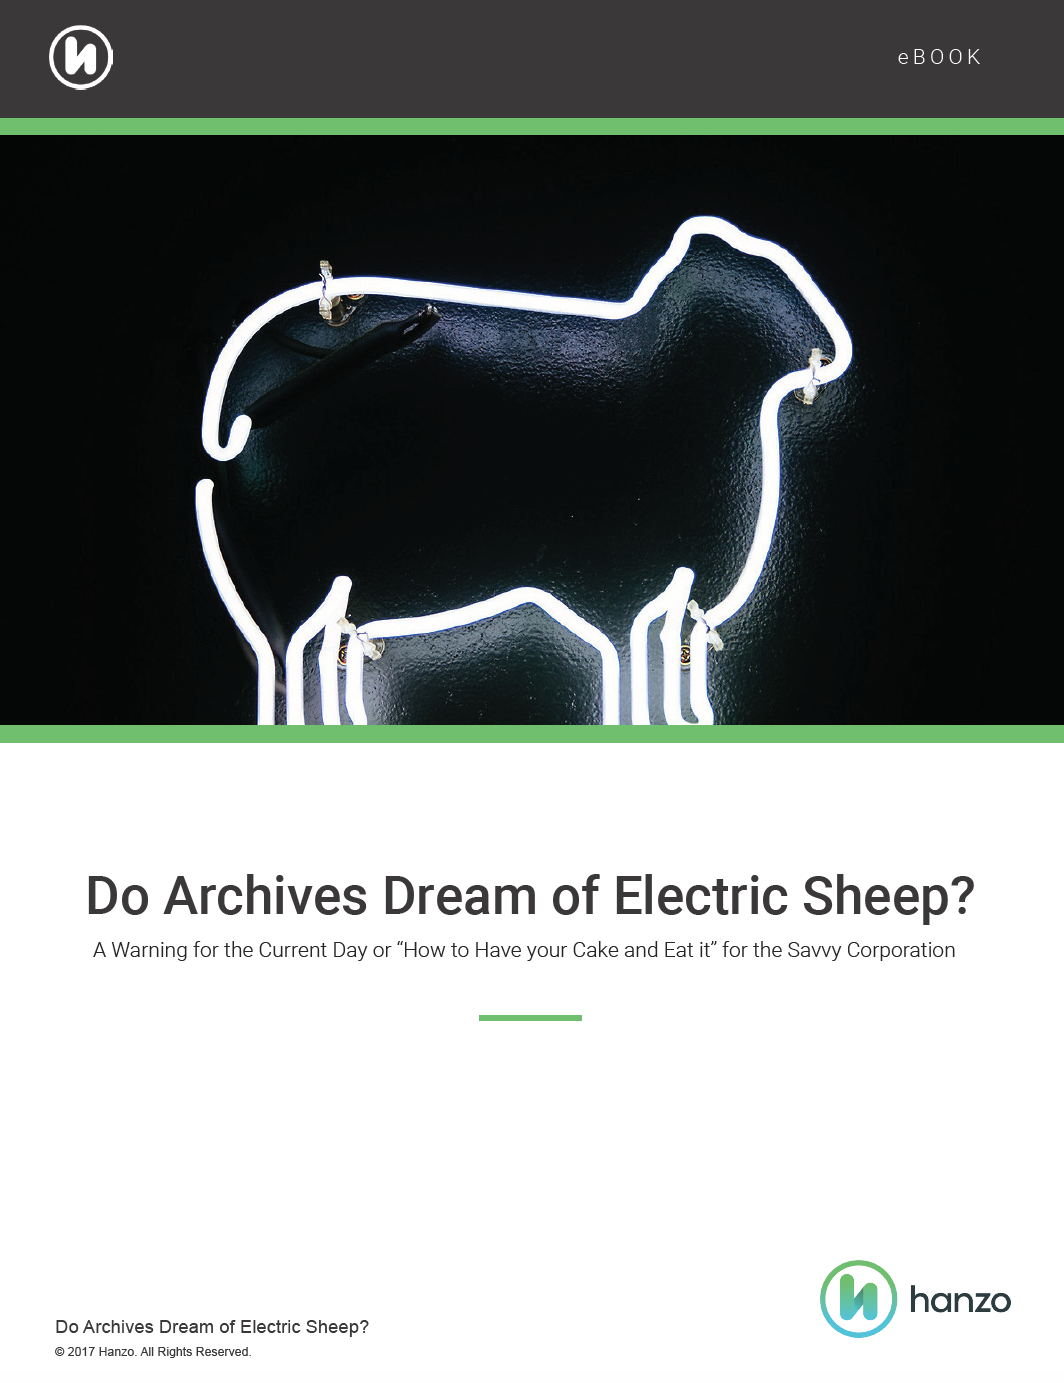 do-archives-dream-of-electric-sheep.png